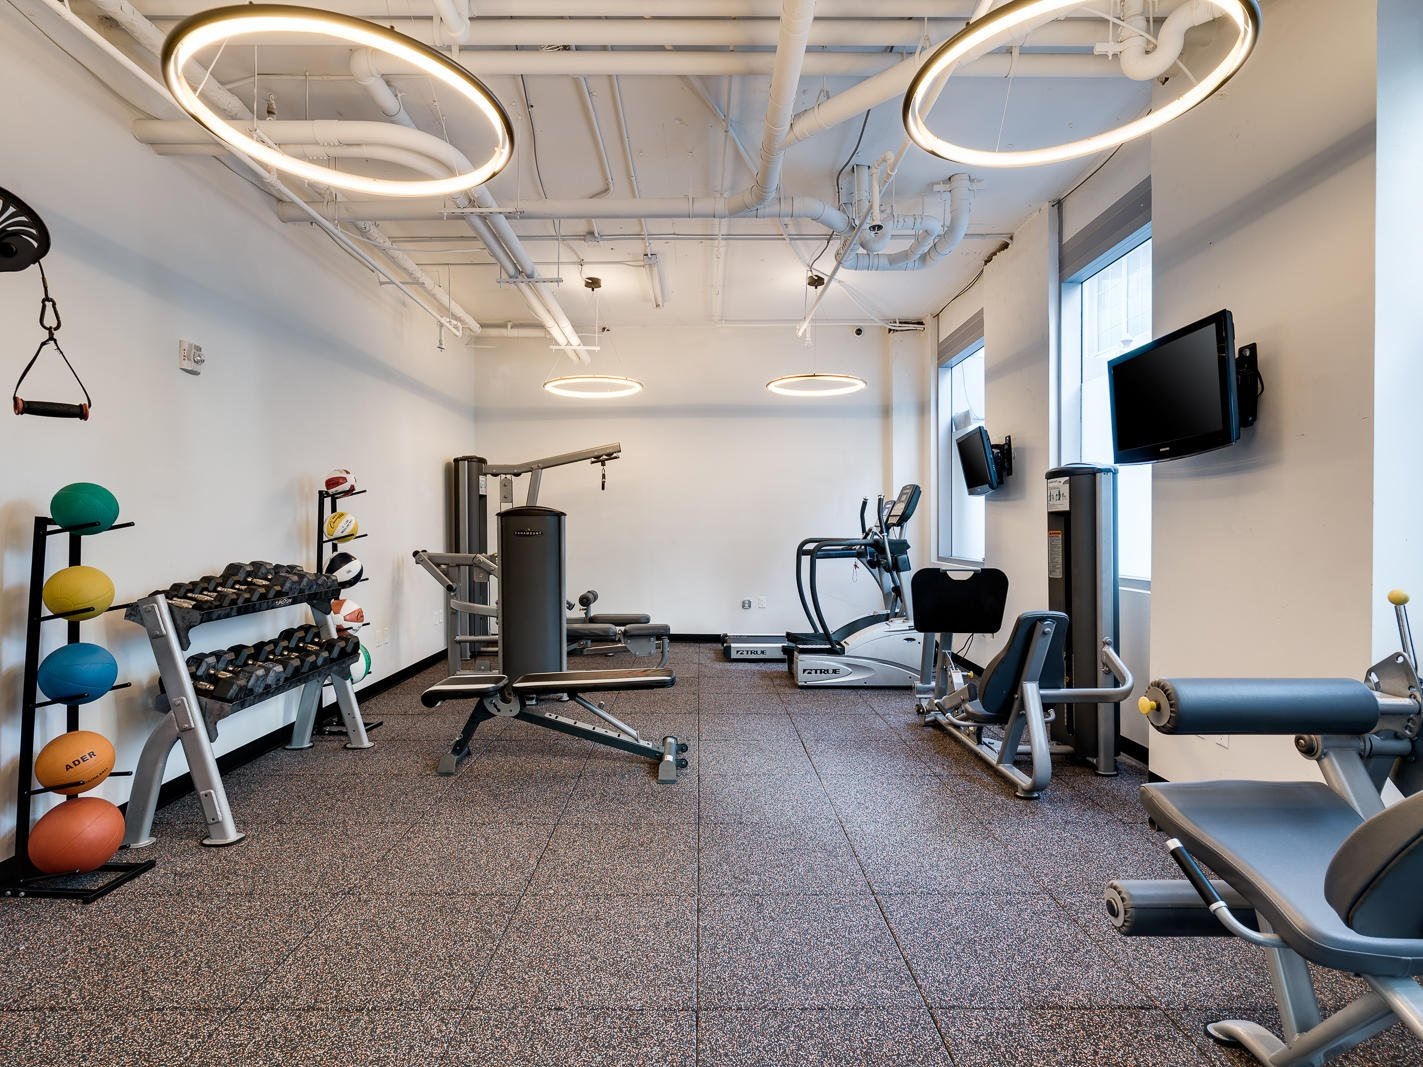 fitness center with weights and exercise equipment